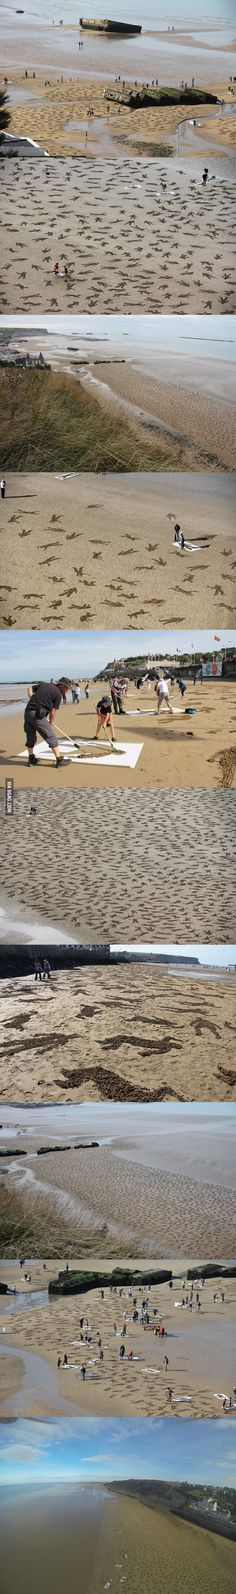 9,000 Fallen Soldiers Etched into the Sand on Normandy Beach to Commemorate Peace Day.